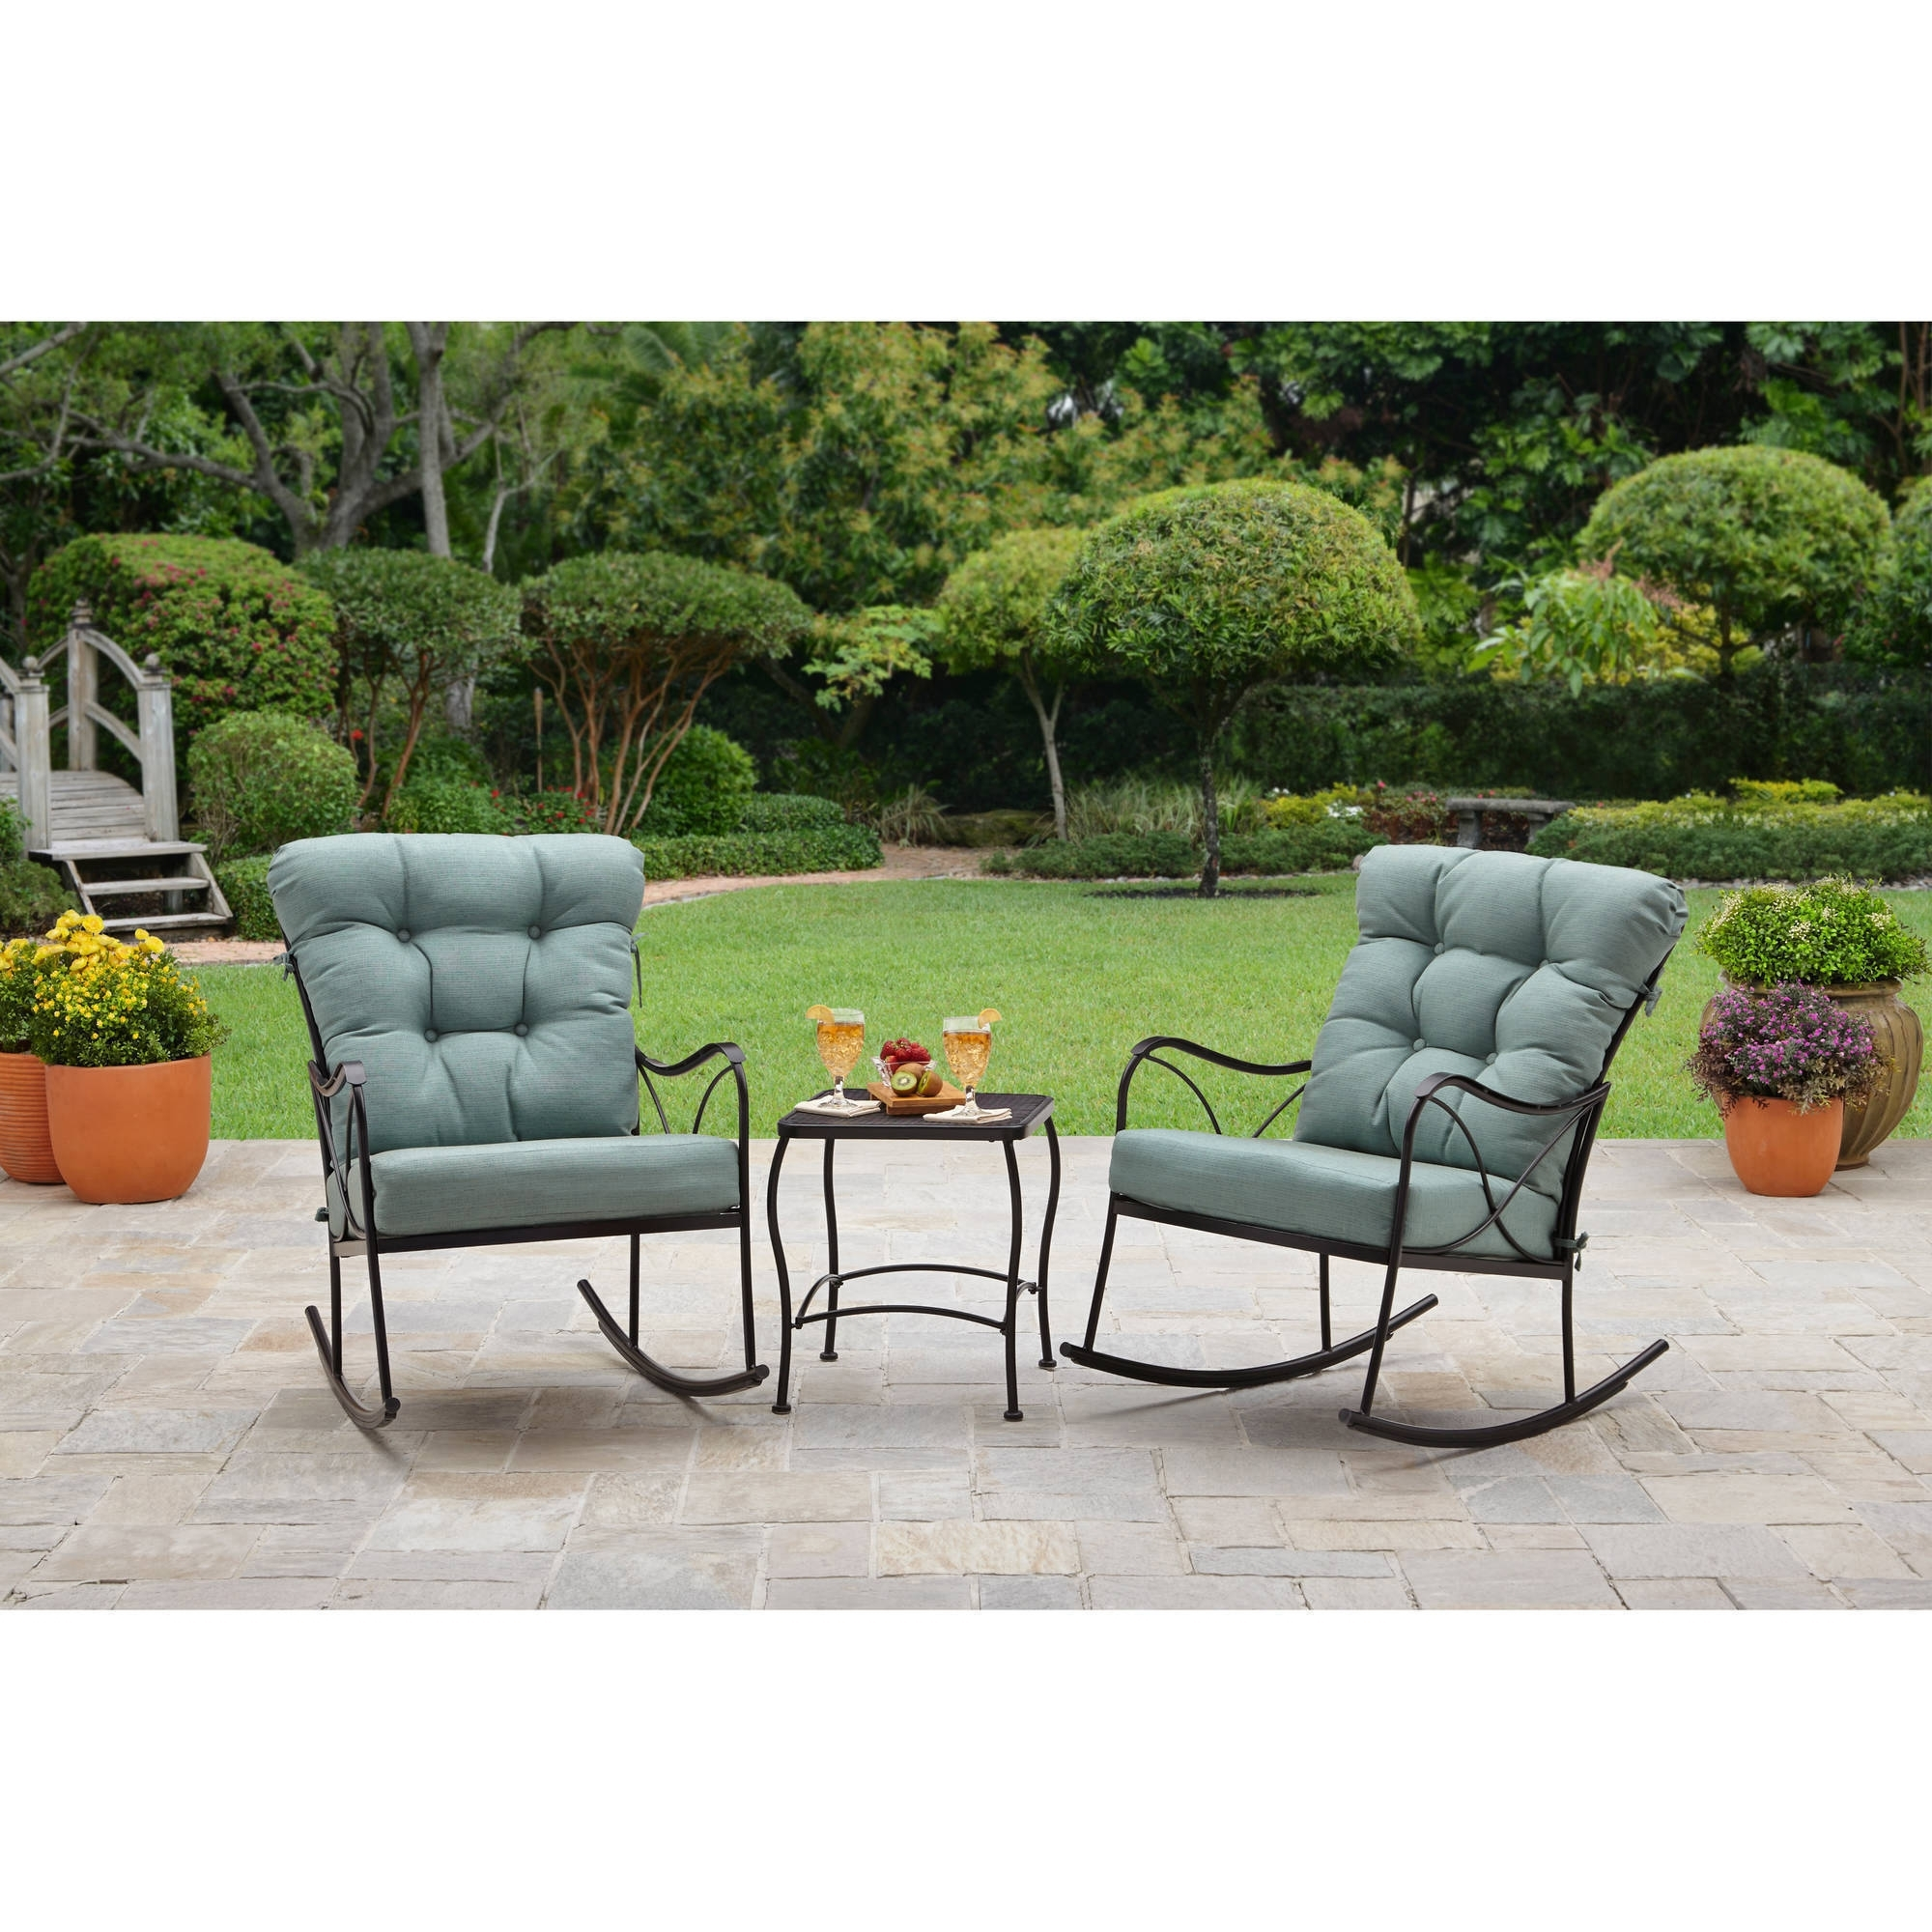 Current Outdoor Rocking Chairs With Table Inside Better Homes And Gardens Seacliff 3 Piece Rocking Chair Bistro Set (View 10 of 20)